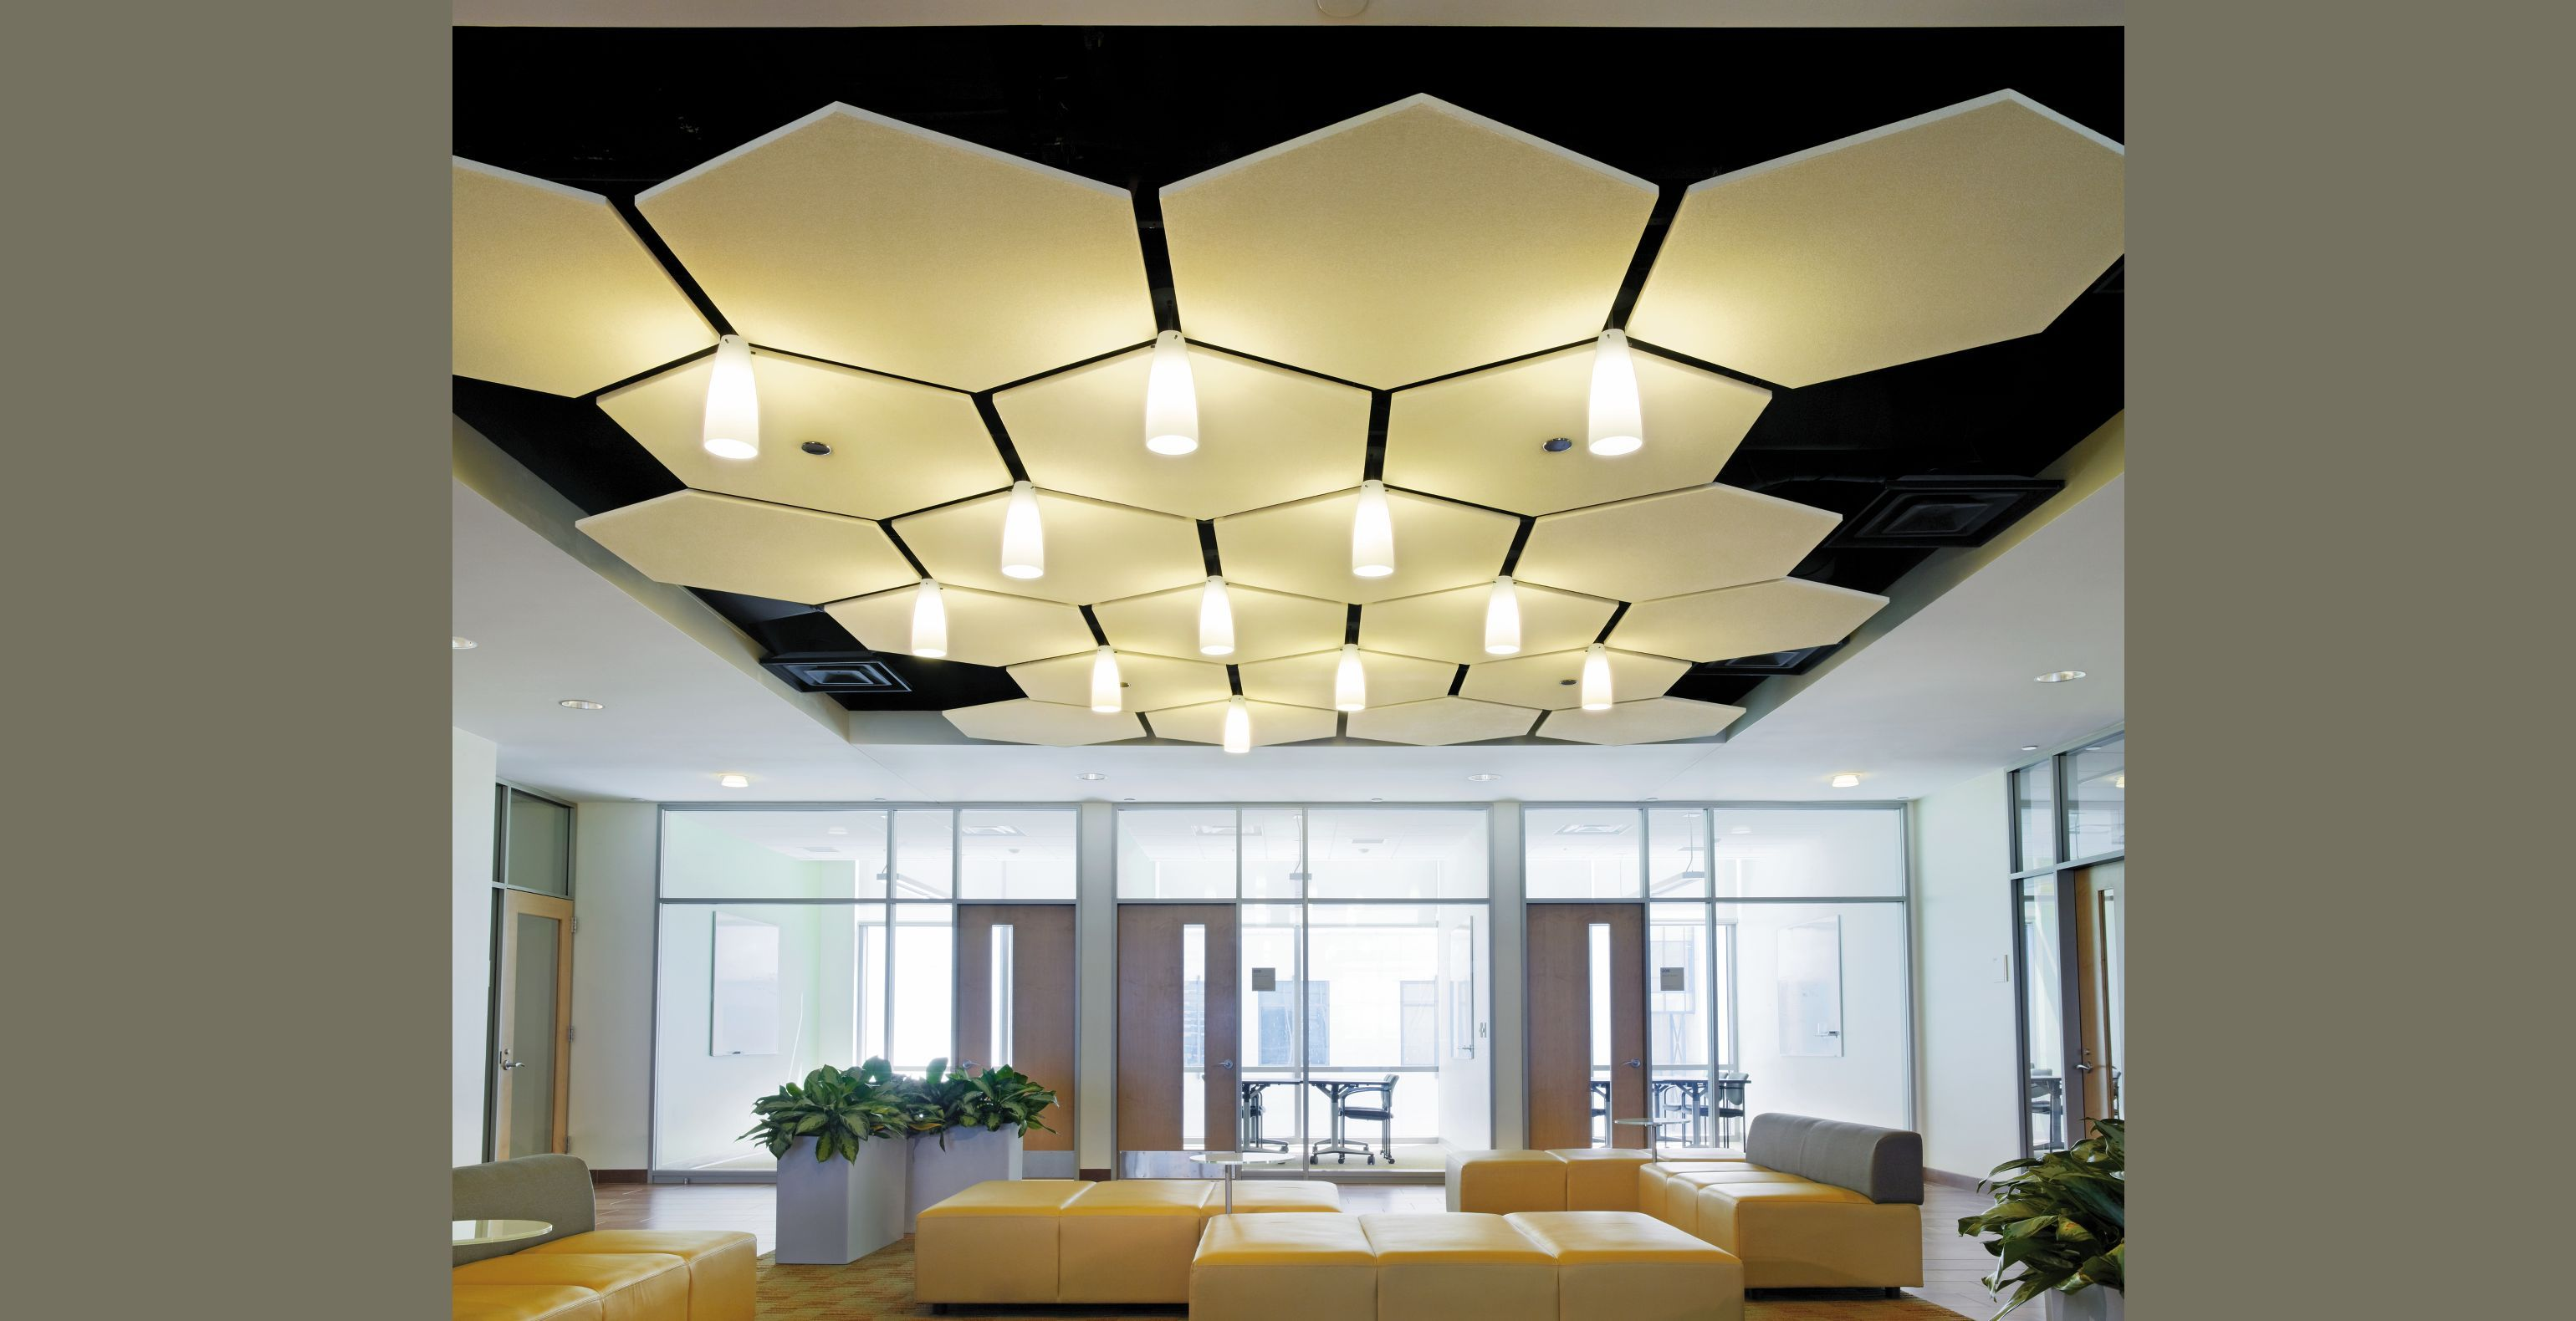 Commercial Ceiling and Wall Systems Idea & Photo Gallery | Ceiling ...